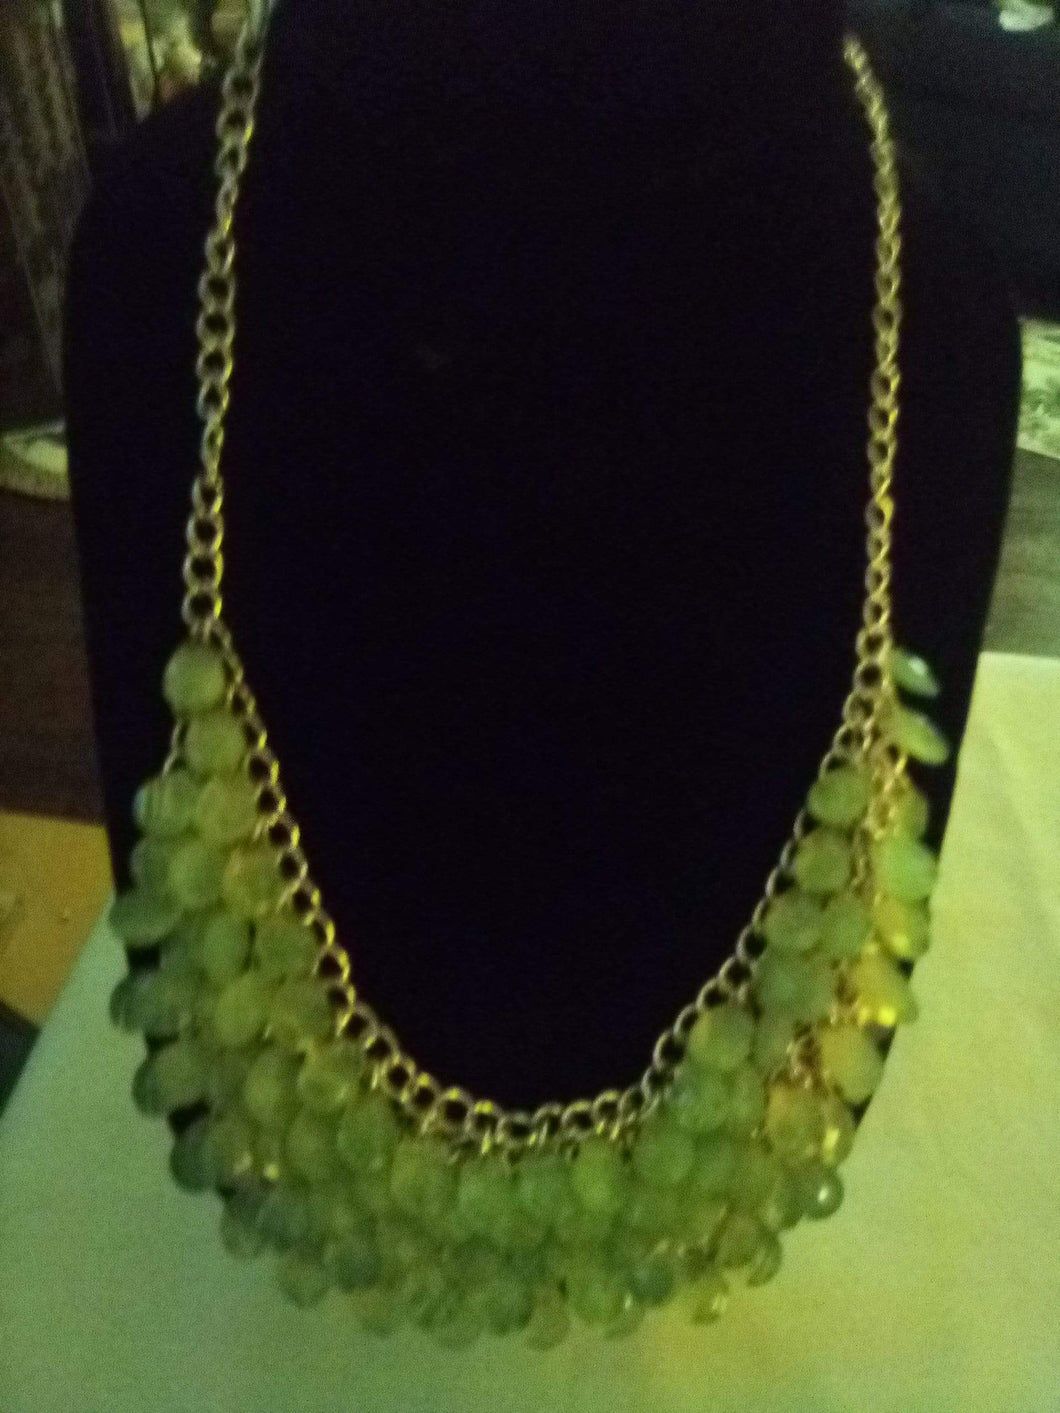 Nice dressy pale blue layered crystal necklace - B&P'sringsnthings